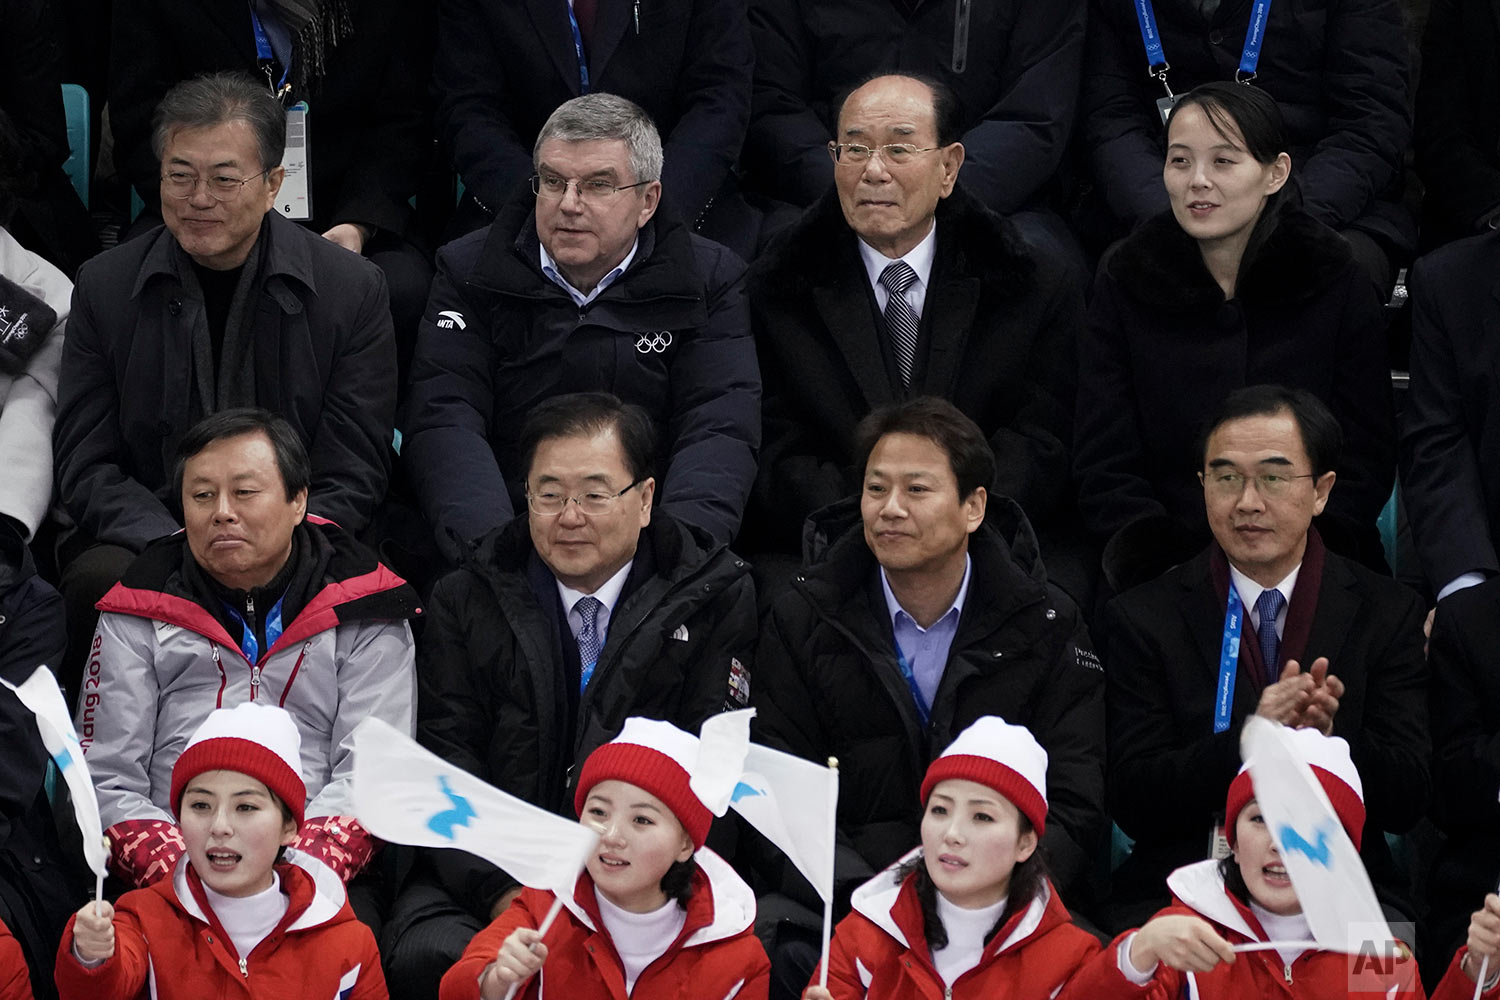 Kim Yo Jong, sister of North Korean leader Kim Jong Un, top right, and North Korea's nominal head of state Kim Yong Nam, second right, Thomas Bach, President of the International Olympic Committee, and South Korean President Moon Jae-in, top left, watch the preliminary round of the women's hockey game between Switzerland and the combined Koreas at the 2018 Winter Olympics in Gangneung, South Korea, Feb. 10, 2018 . (AP Photo/Felipe Dana)